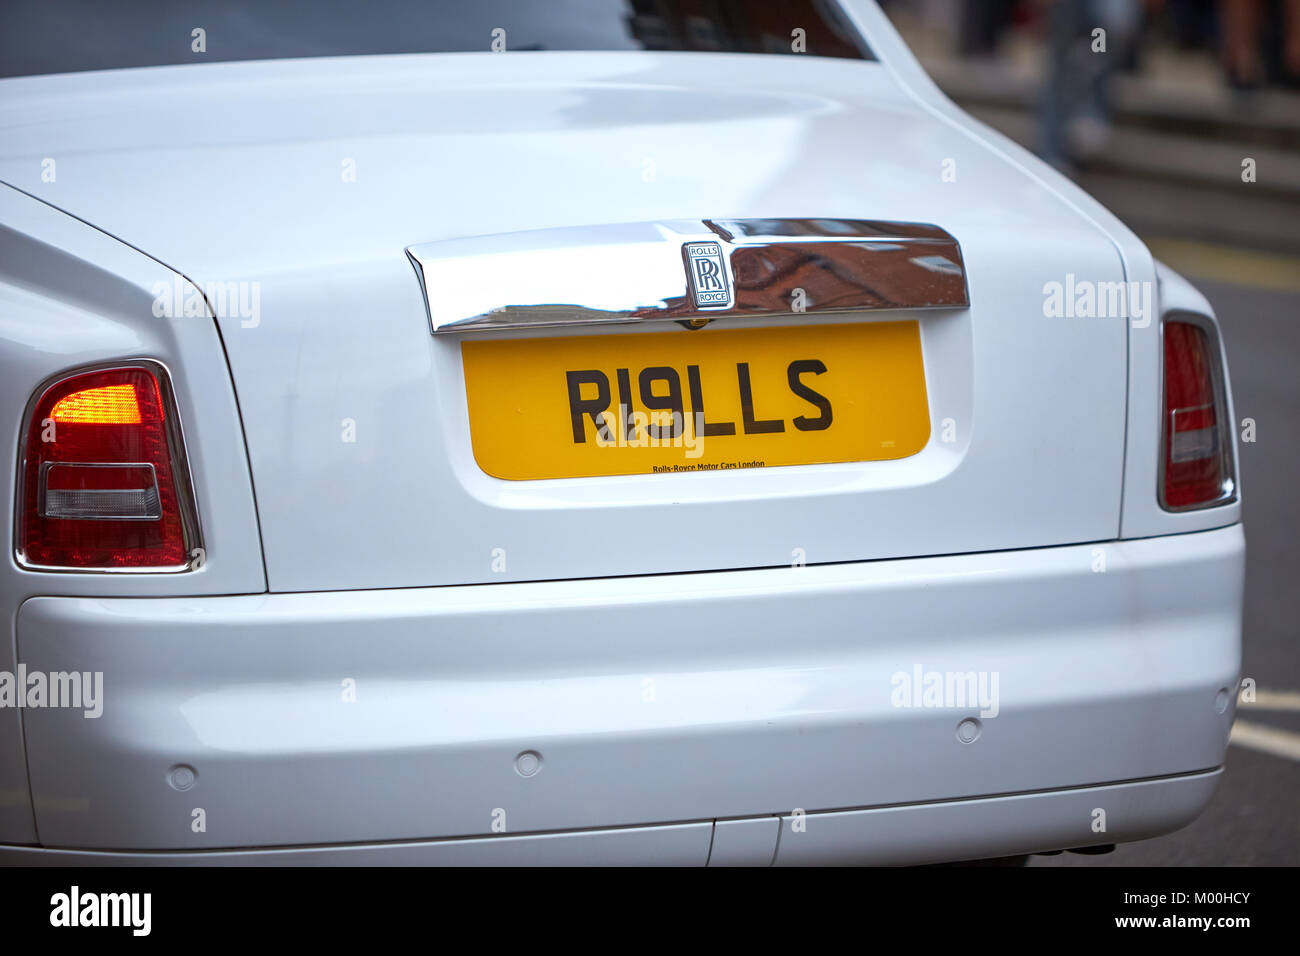 The Tail Lights And Personalised Number Plate Of A White Rolls Royce Stock Photo Alamy